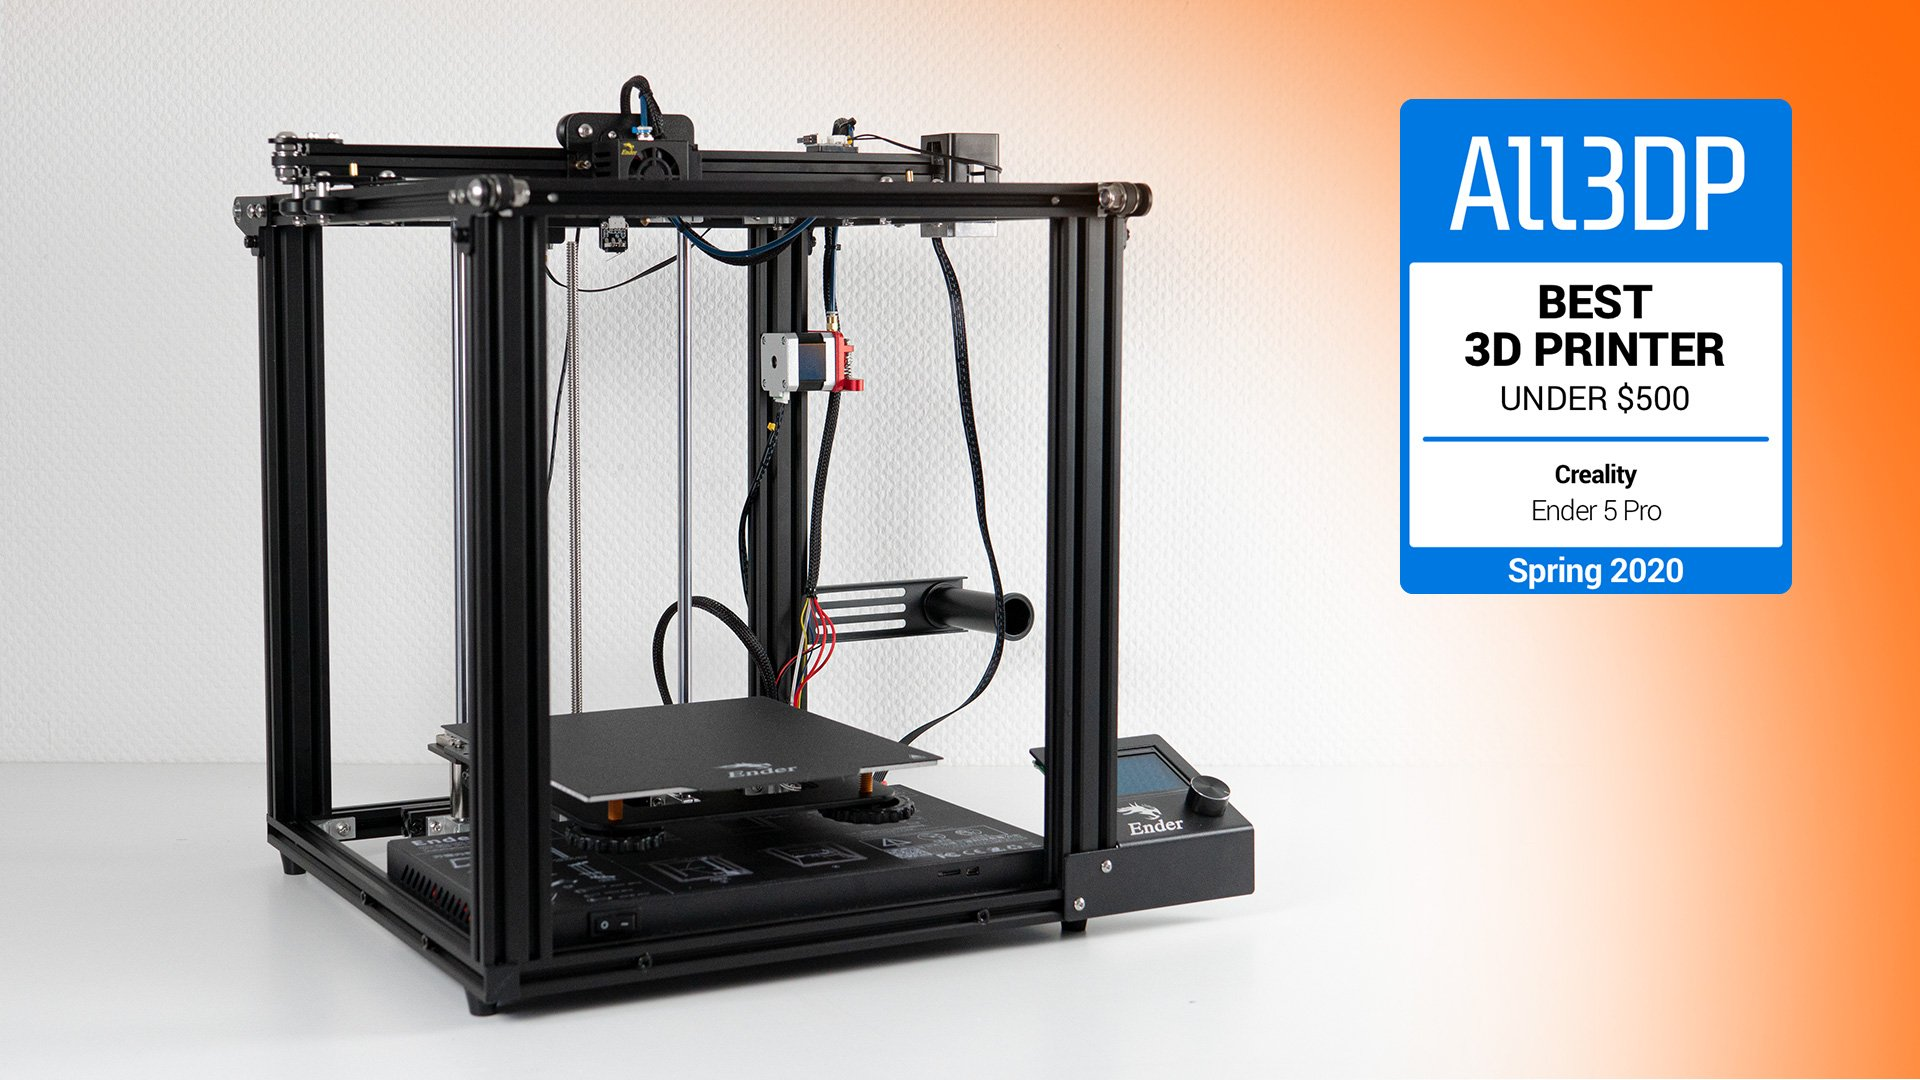 Creality Ender 5 Pro Review: Best 3D Printer Under $500 | All3DP